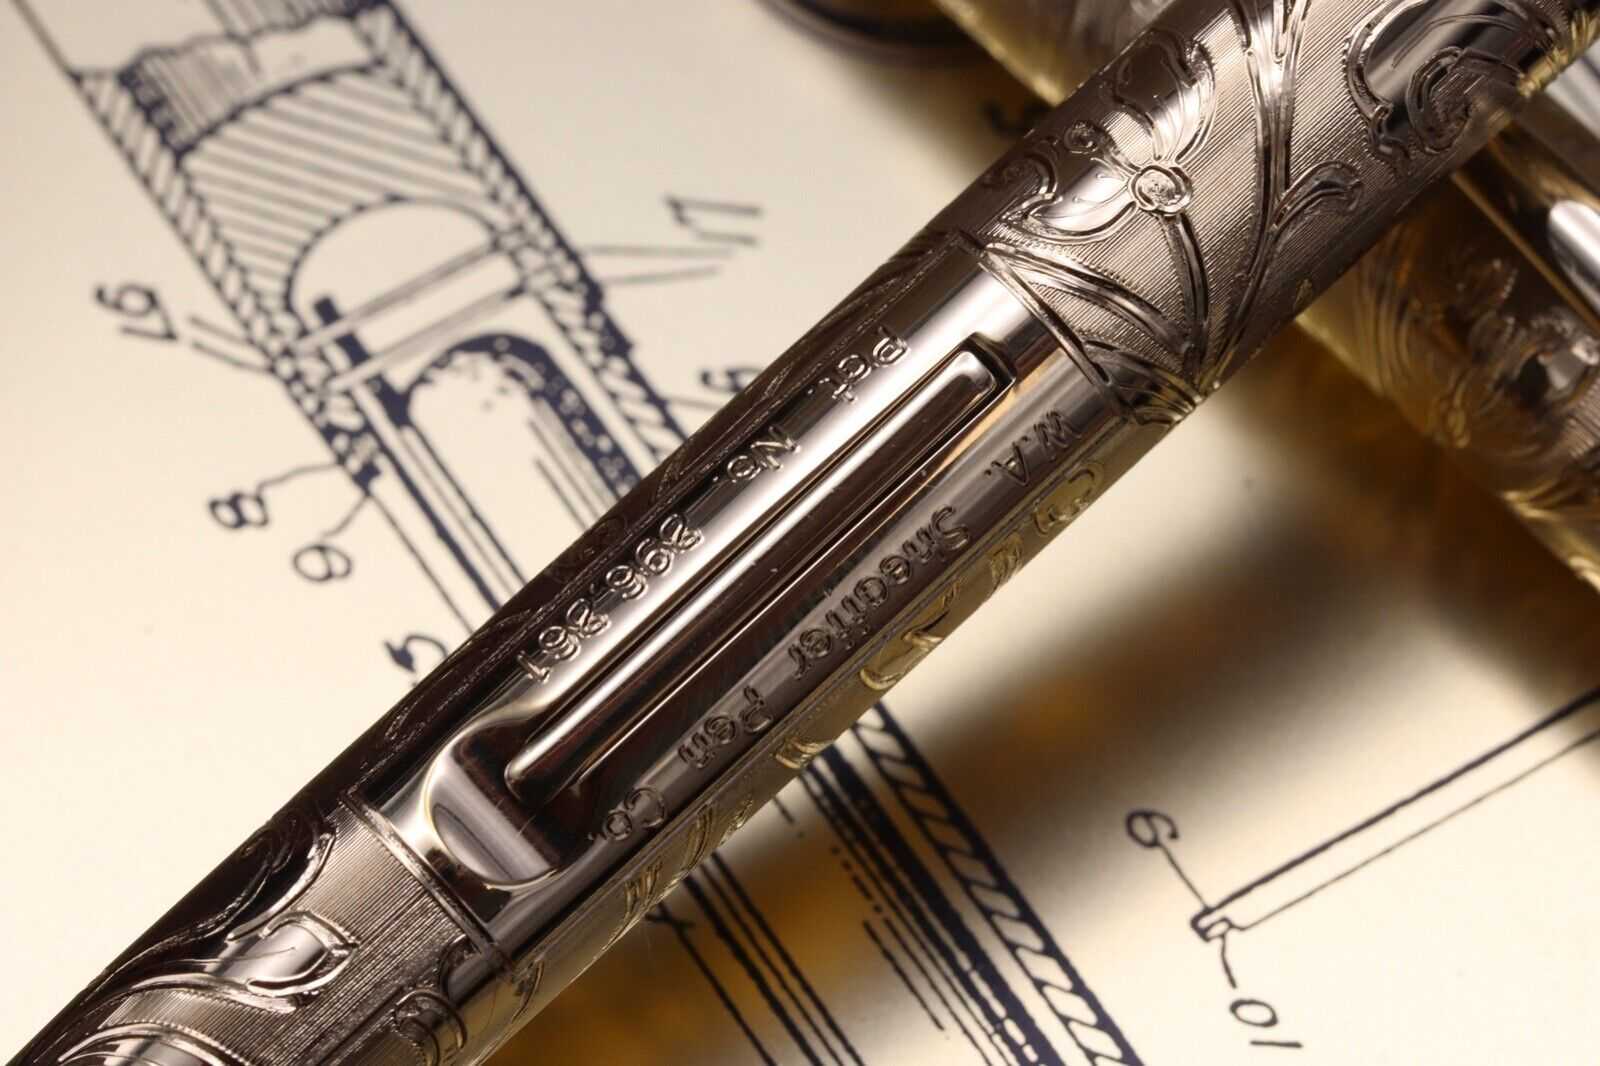 W.A Sheaffer Commemorative LE Lever Fill Fountain Pen - Fully Serviced July 21 2